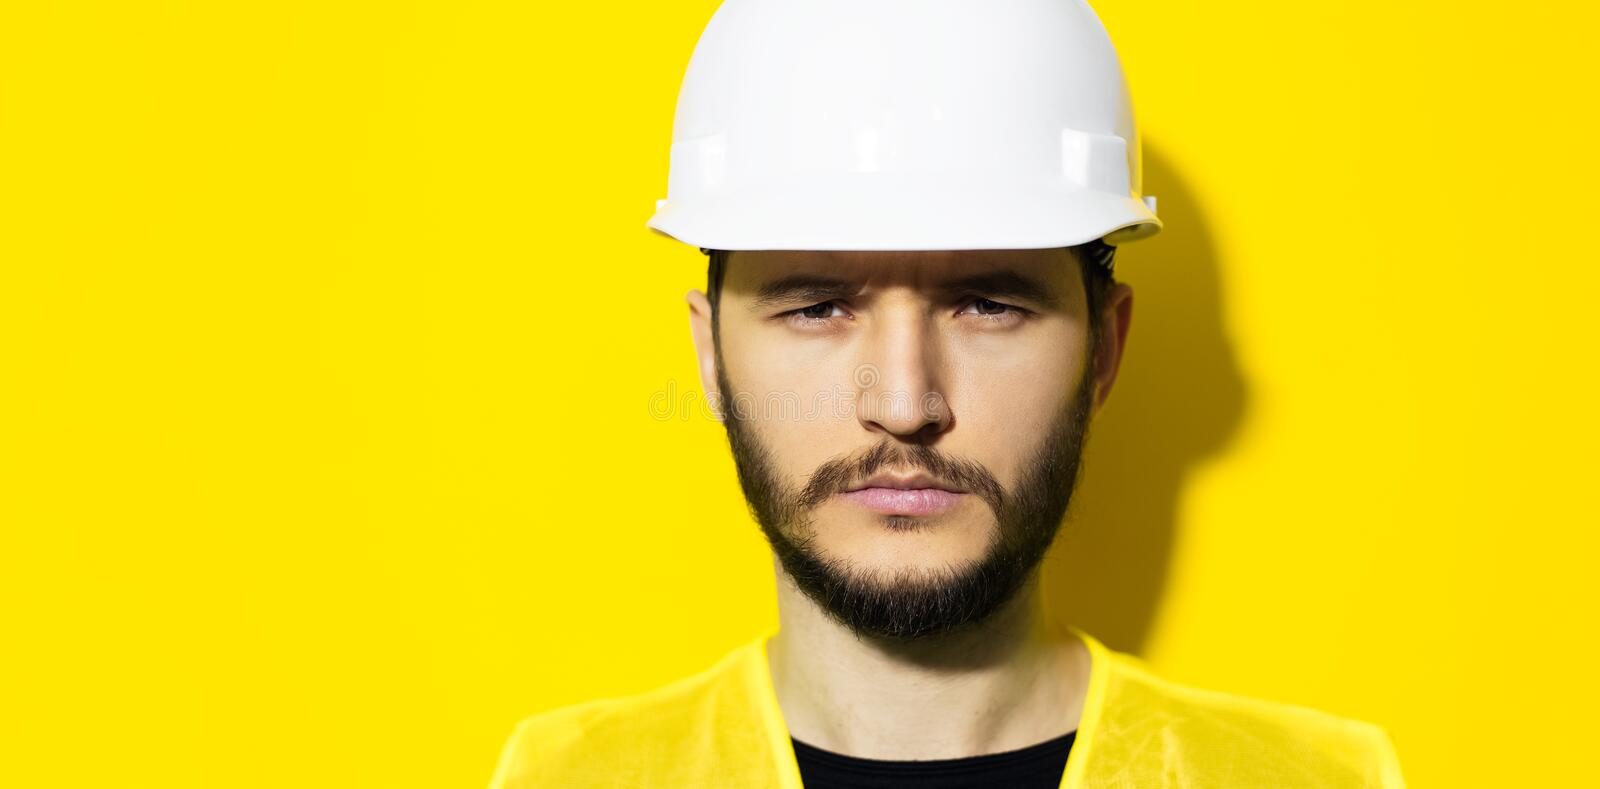 Studio close-up portrait of young serious man architect, builder engineer, wearing white construction safety helmet and yellow jac stock images